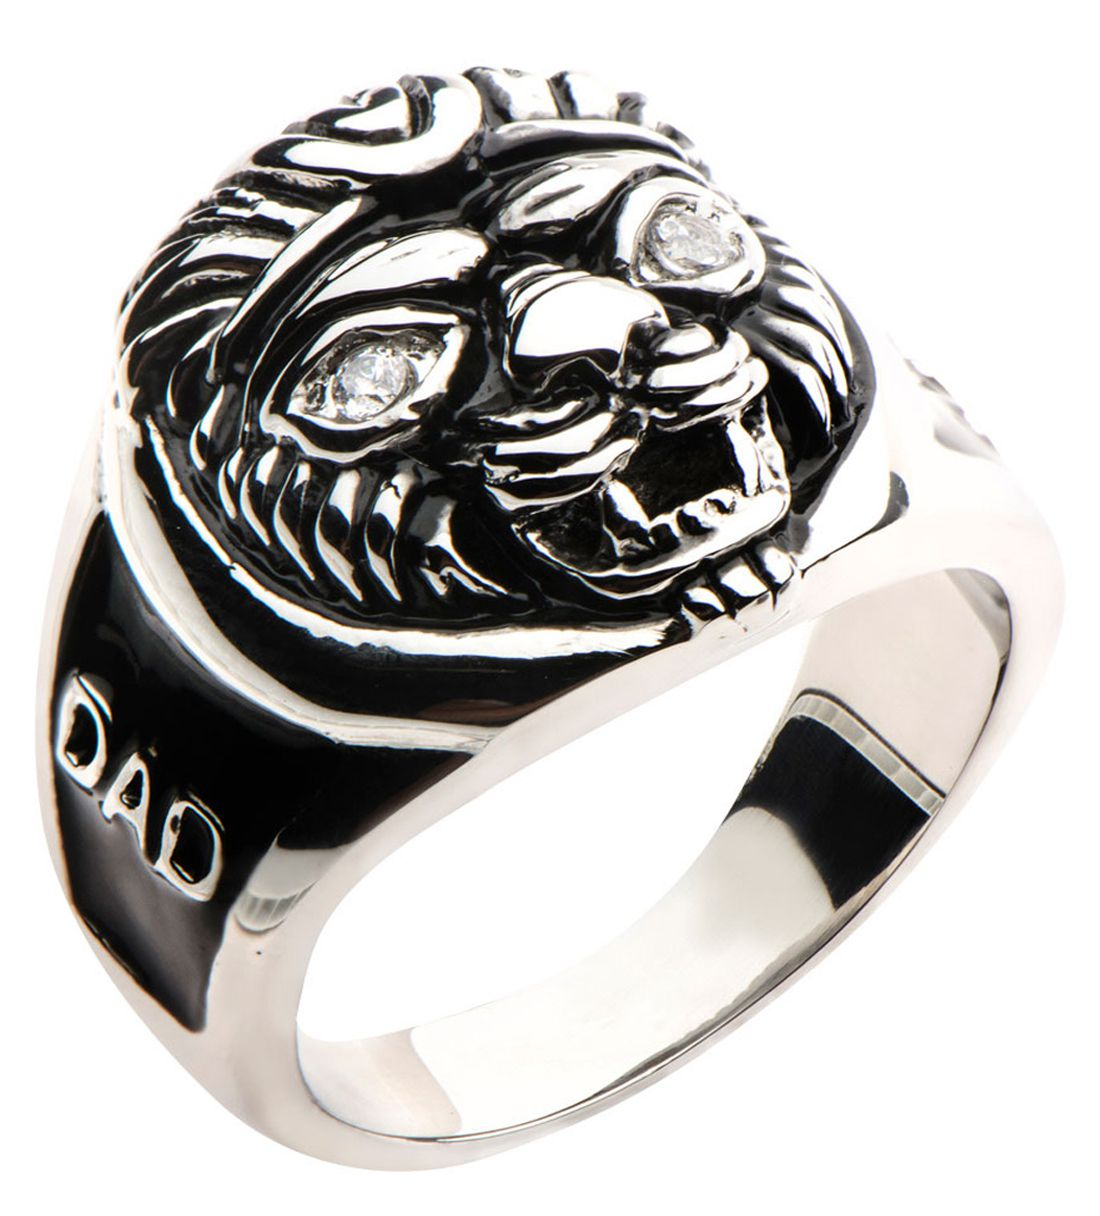 Inox Jewelry Black and Silver Stainless Steel Lion's Head DAD Ring